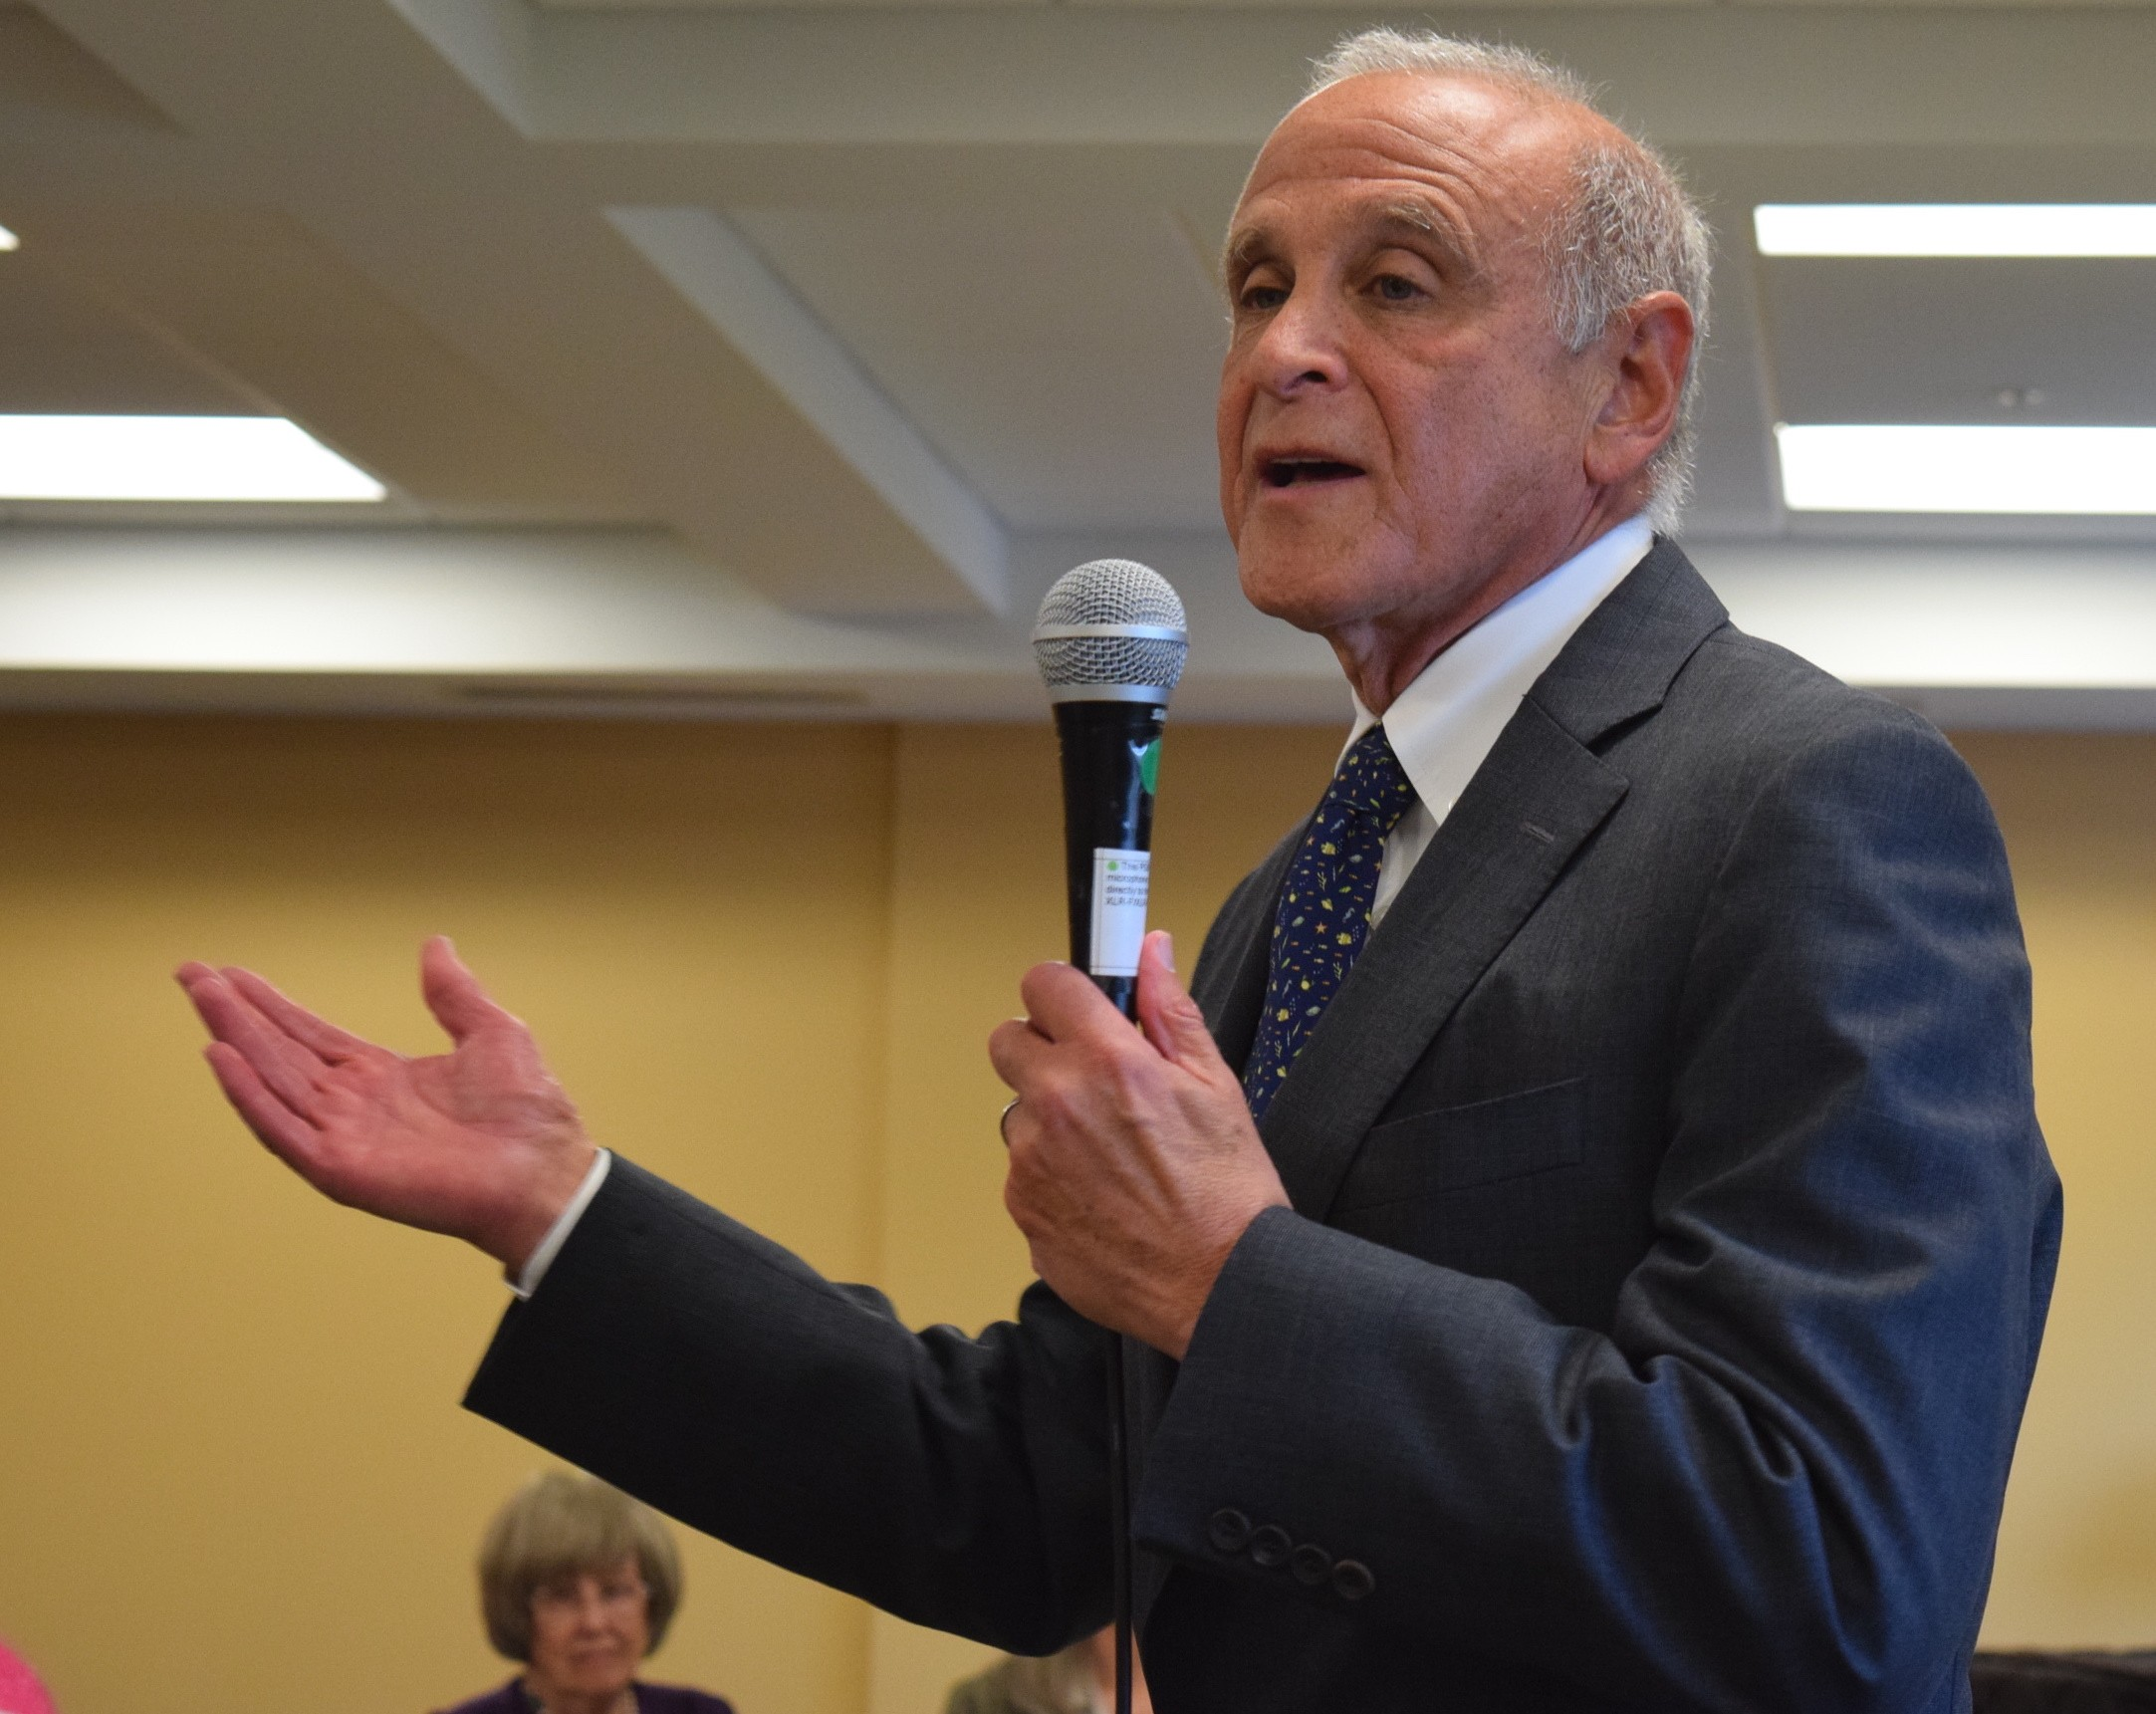 lisman personals The 2016 governor's race is getting more interesting by the day two candidates — republican bruce lisman and democrat matt dunne — clarified this week that they.